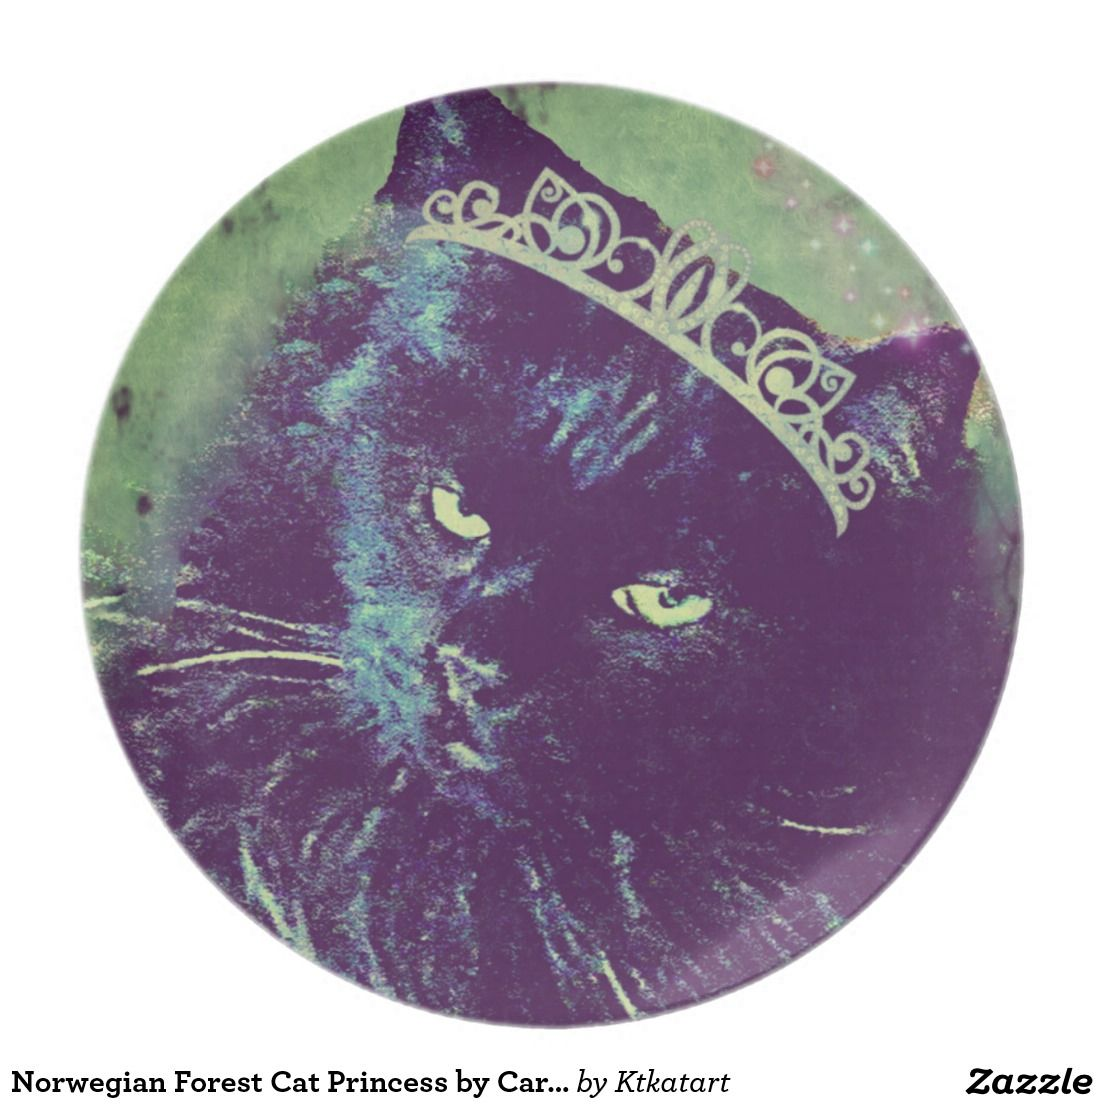 Norwegian Forest Cat Princess by Carol Zeock Plate